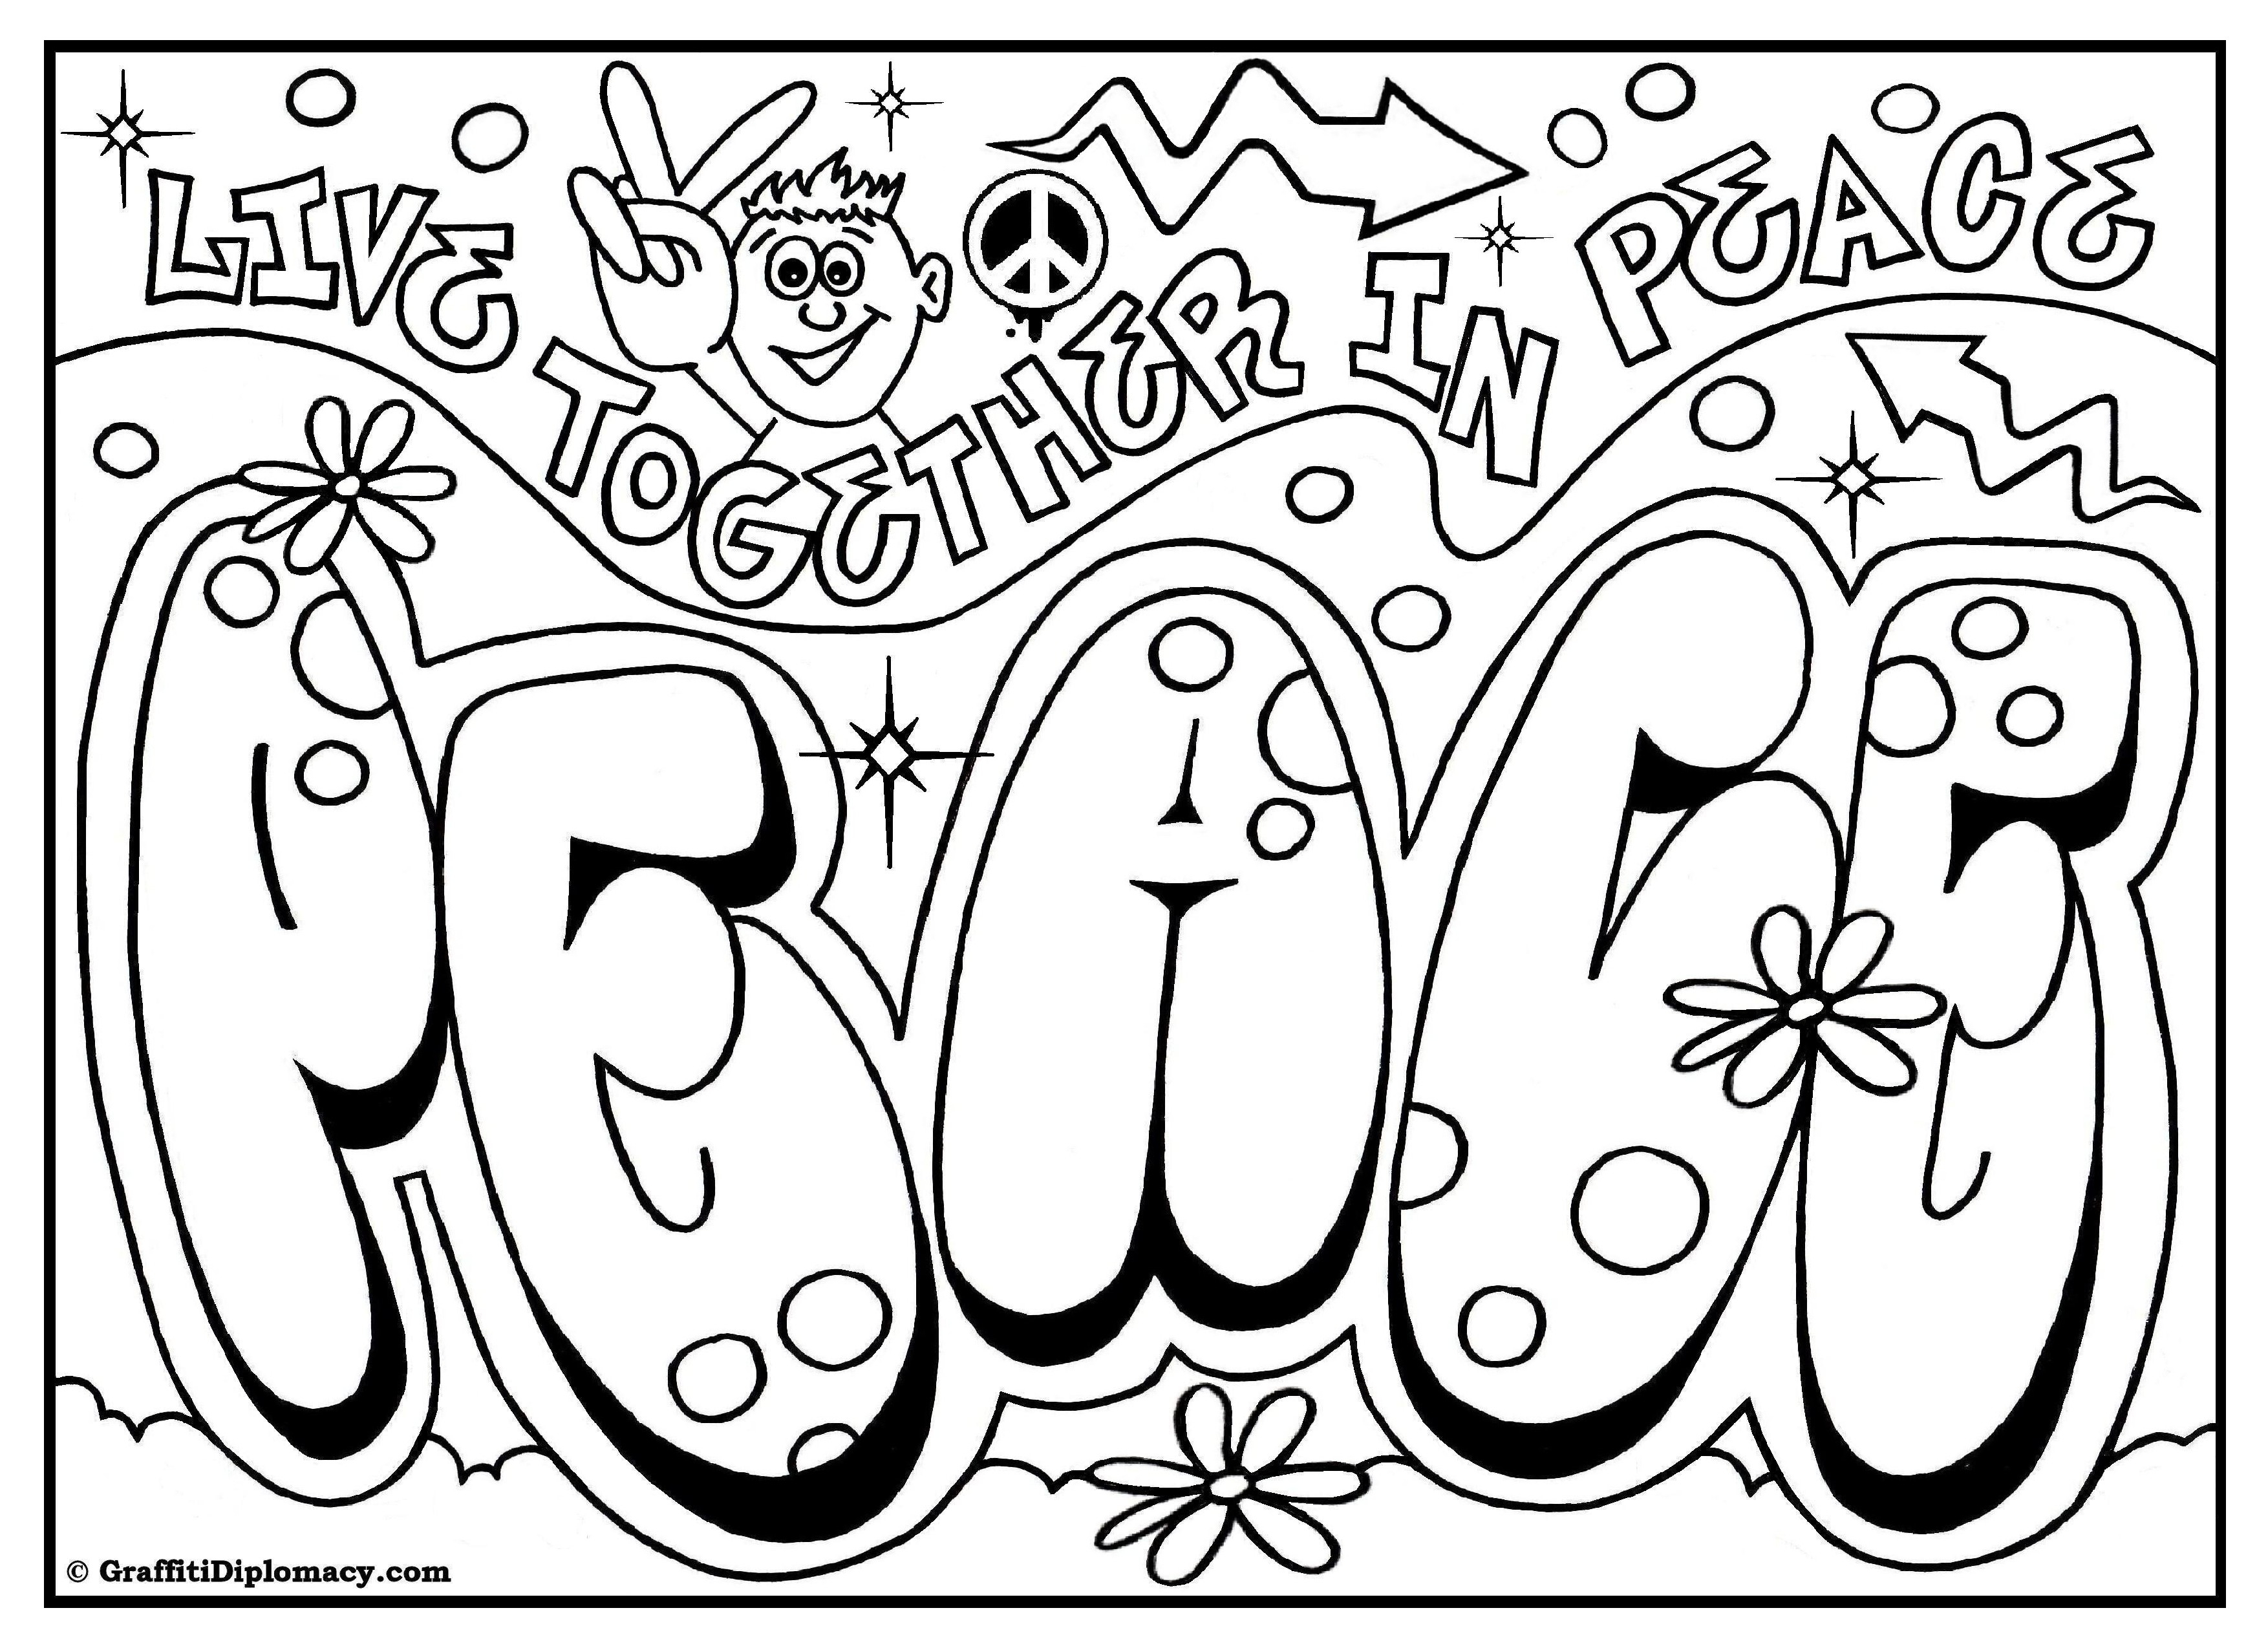 My Room Coloring Pages Omg Another Graffiti Coloring Book Of Room Signs Learn To Draw